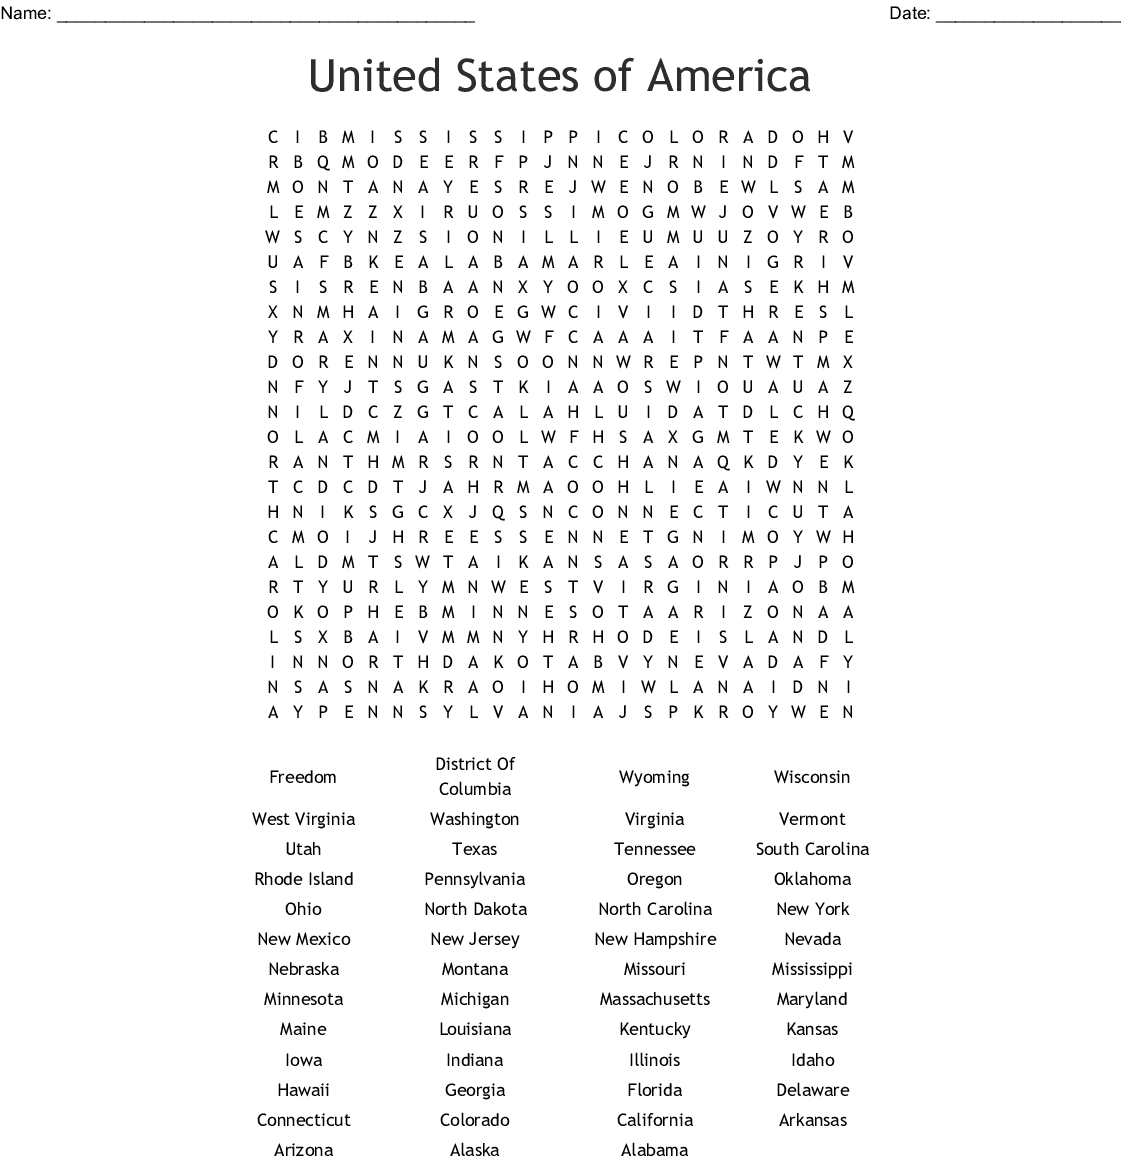 United States Of America Word Search - Wordmint